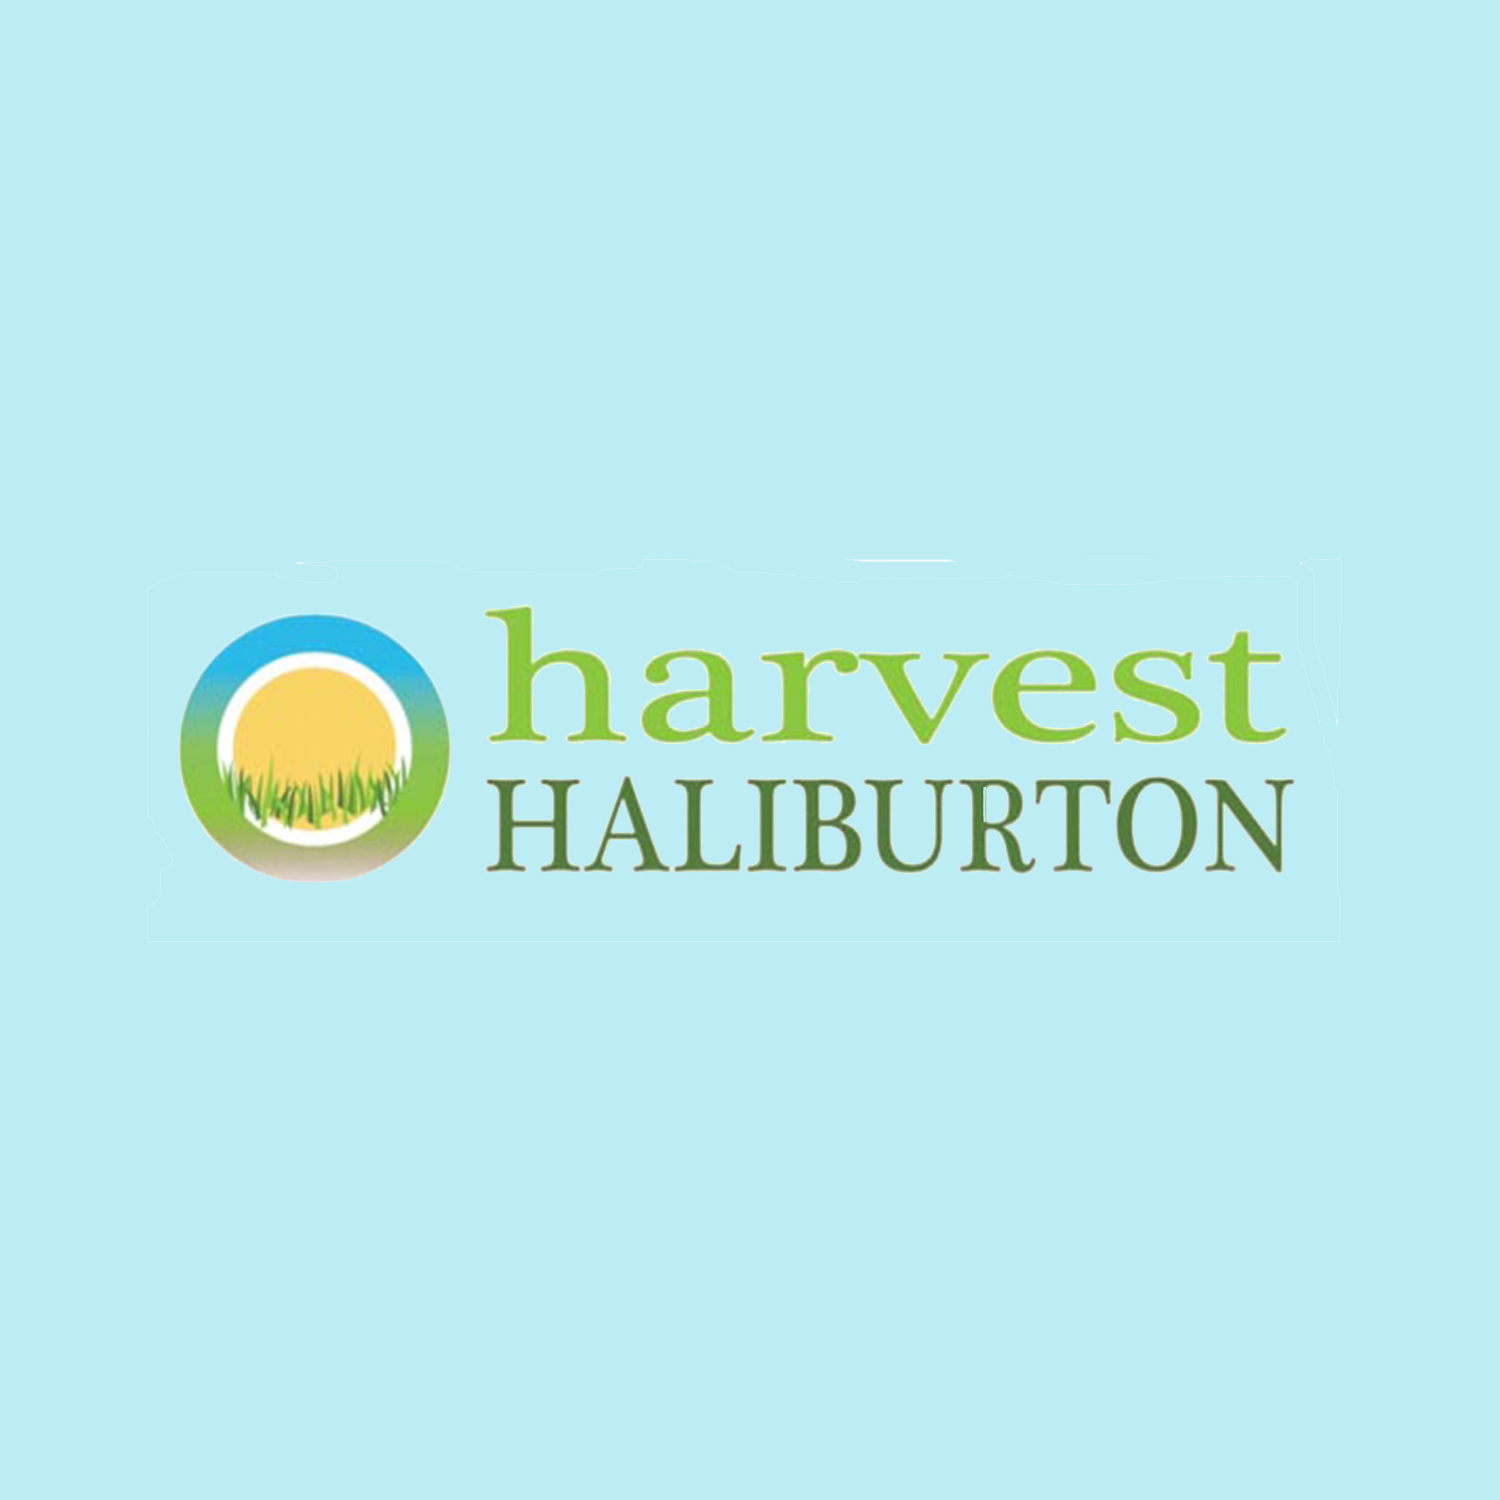 harvest haliburton square